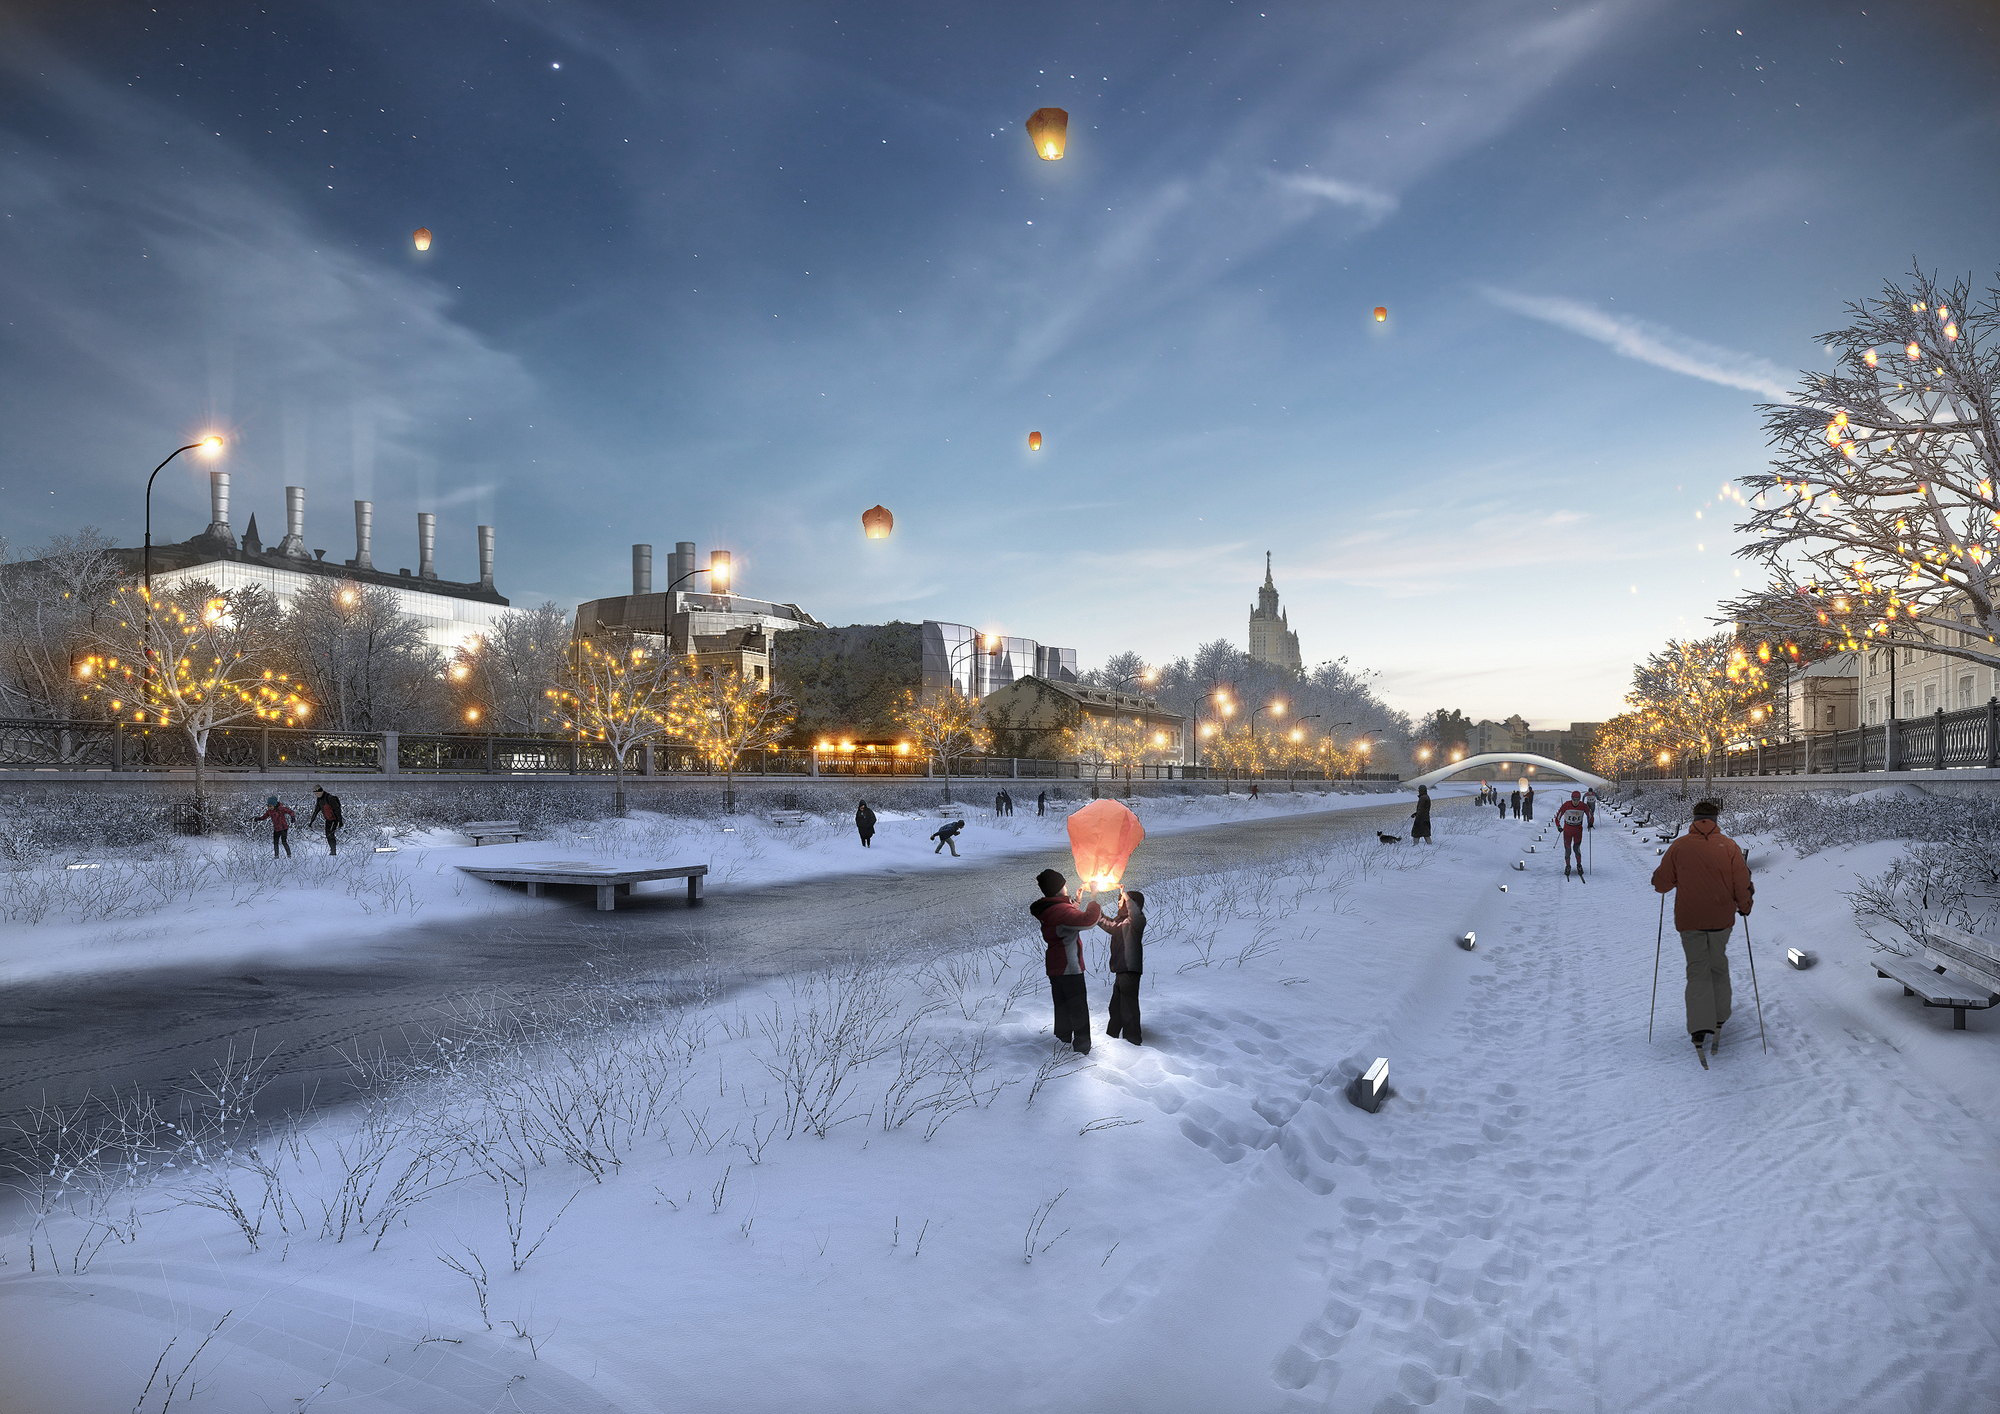 5489a1dbe58ecec5720000cb_project-meganom-wins-contest-to-transform-moscow-riverfront_moscow_river_winter